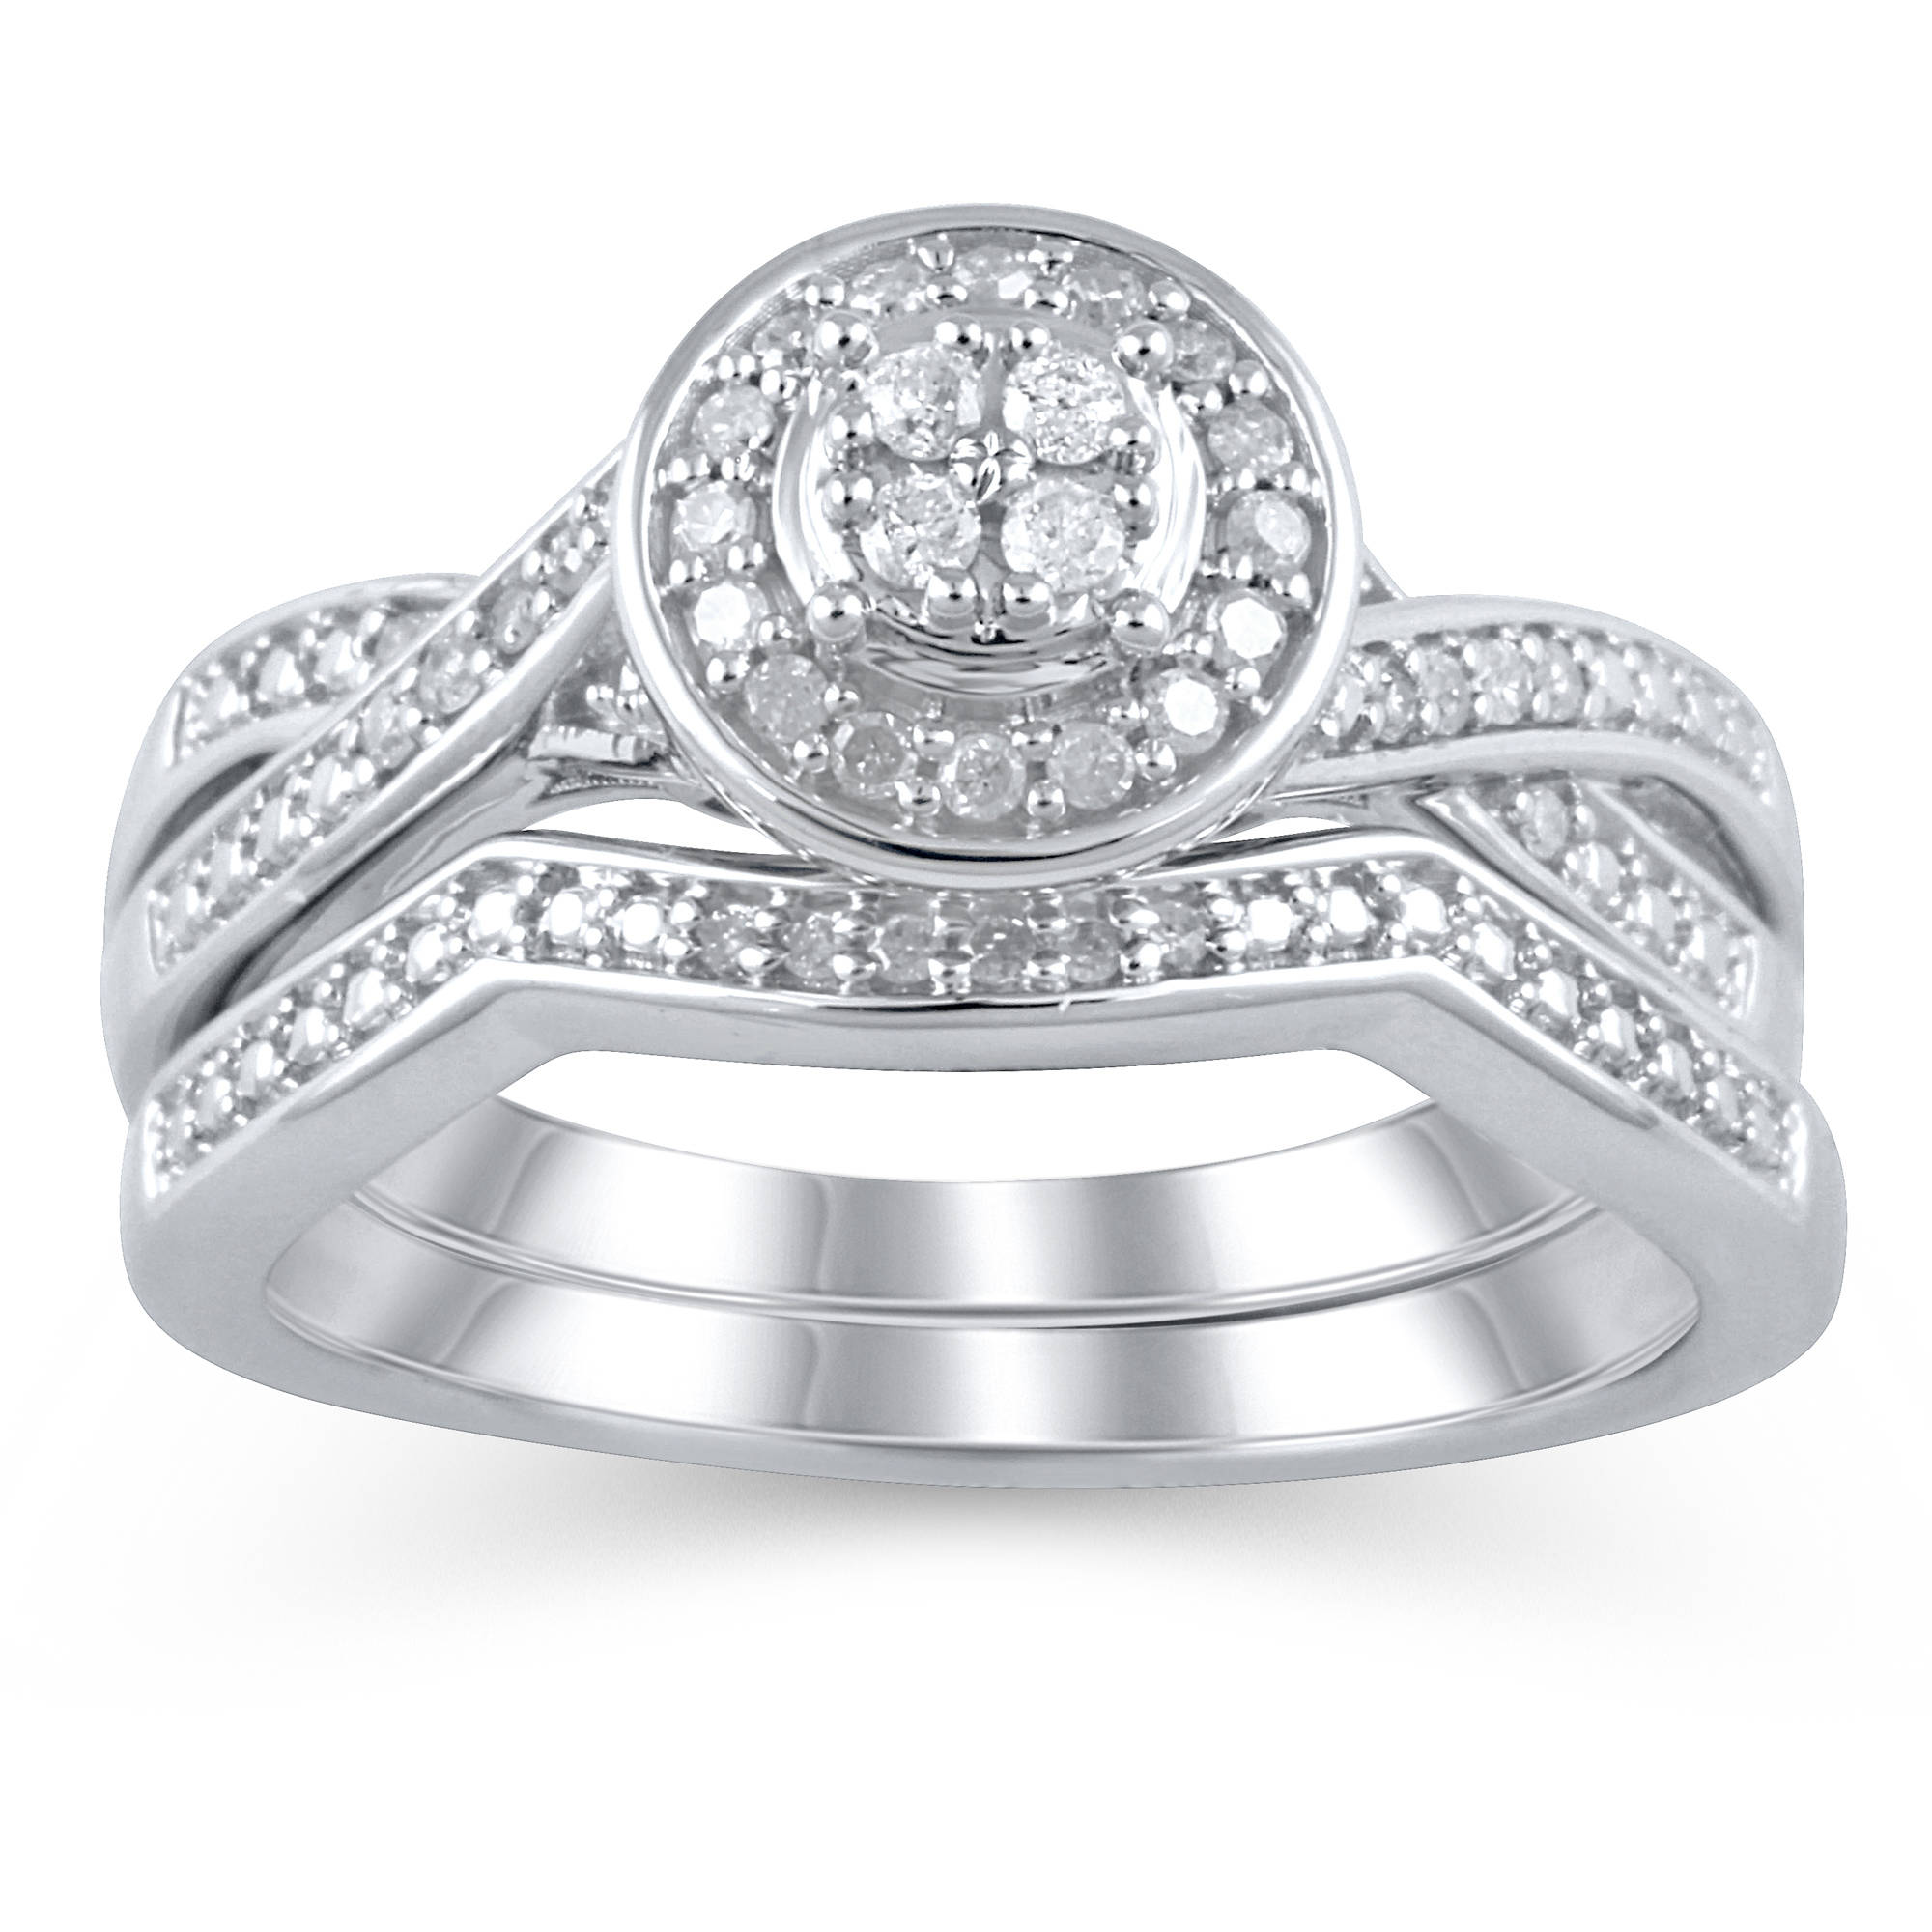 Forever Bride 1 5 Carat T.W. Diamond Sterling Silver Bridal Set by ELEGANT COLLECTION